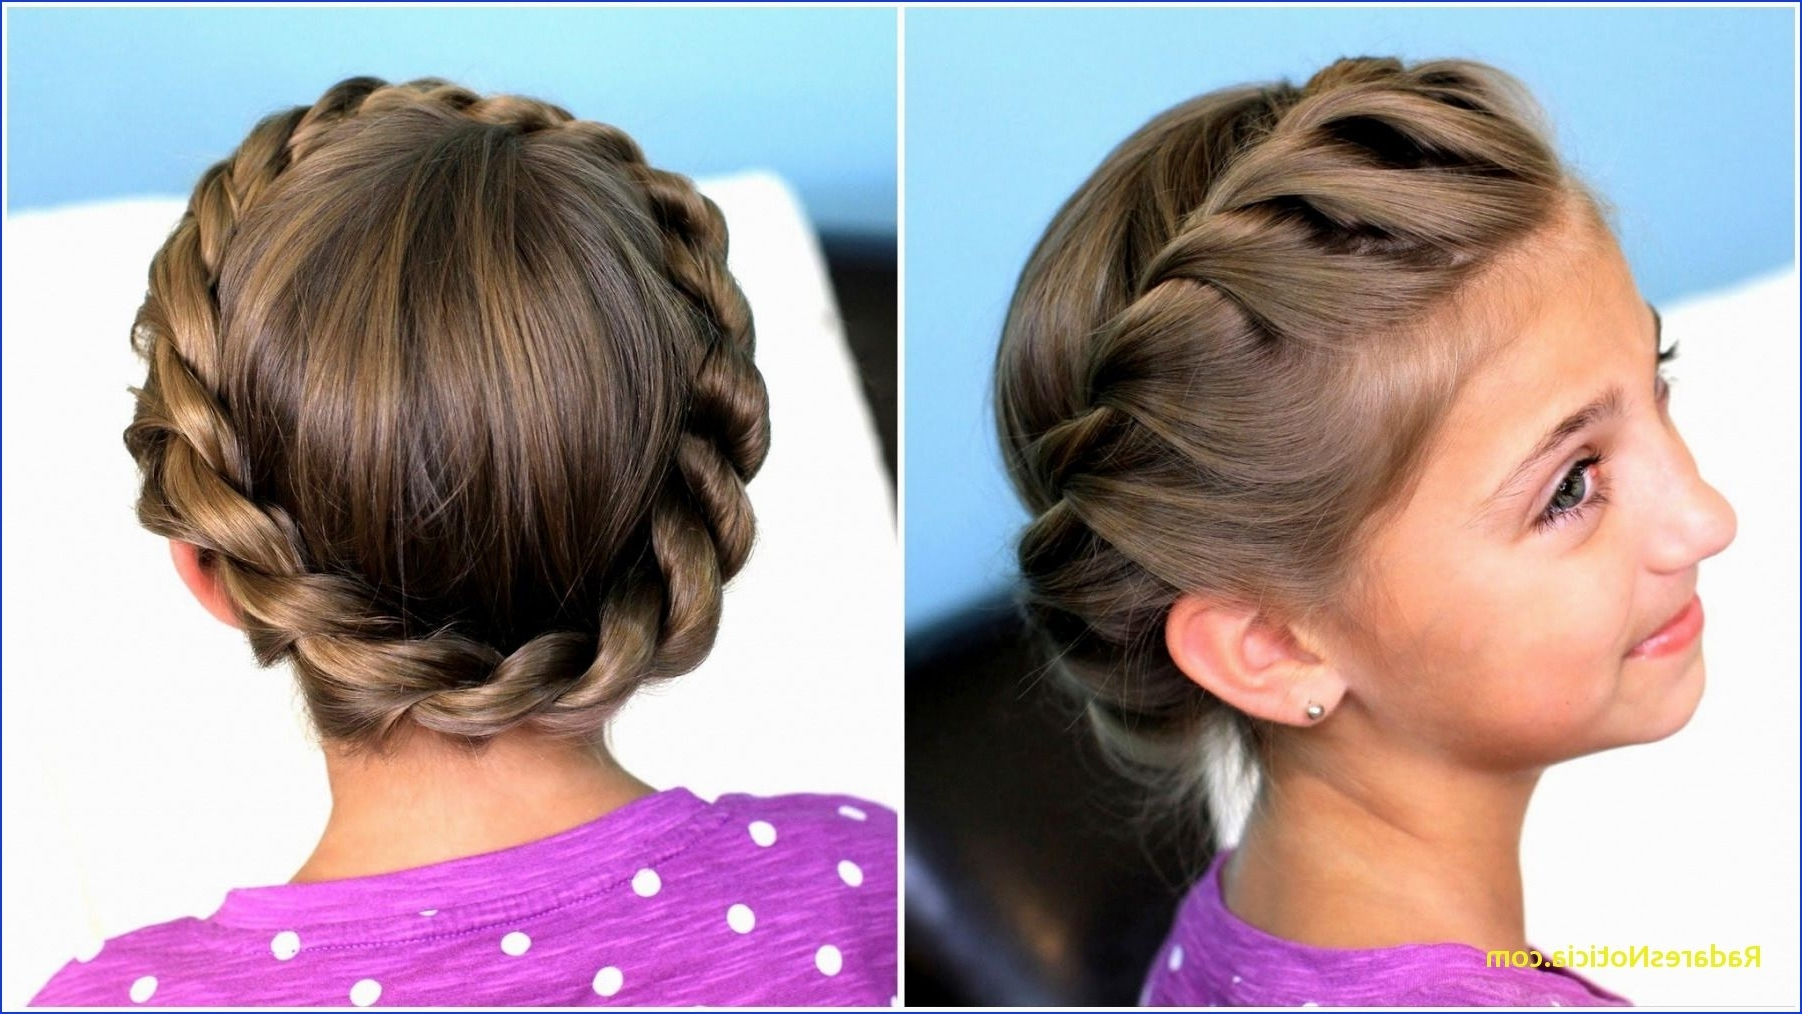 Favorite Cute Braided Hairstyles For Cute Braided Hairstyles Cute Braided Hairstyles To Inspire You How (View 6 of 15)